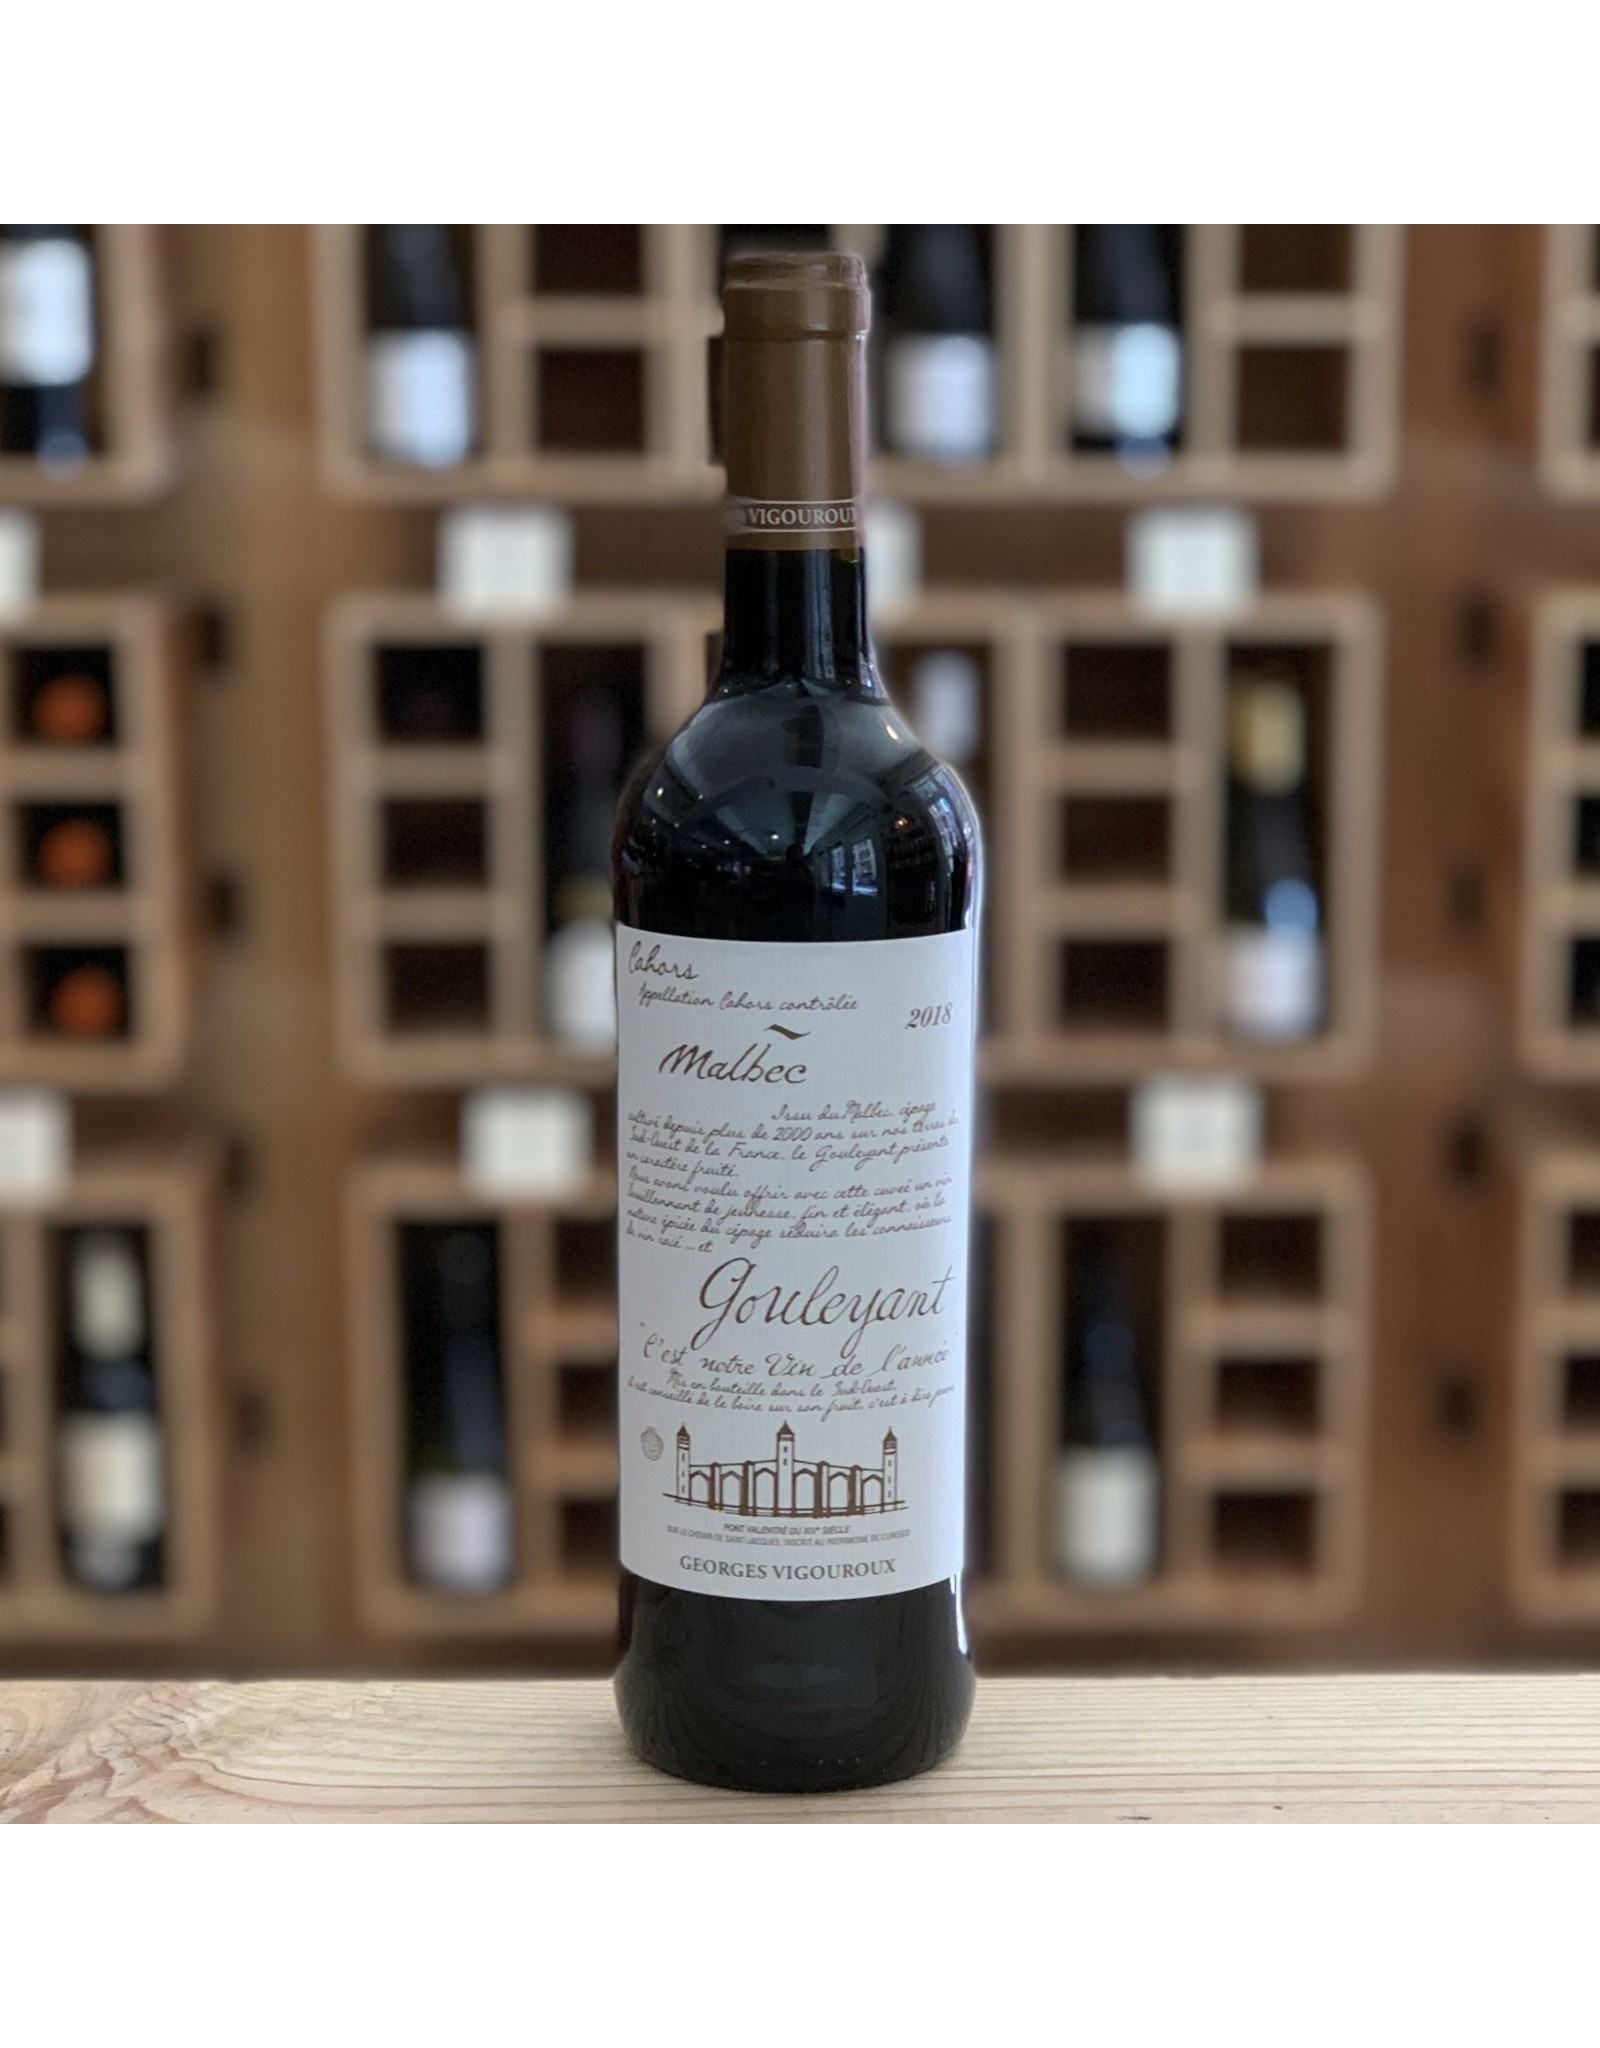 Cahors Georges Vigouroux Cot ''Gouleyant'' Malbec 2019 - Cahors, France